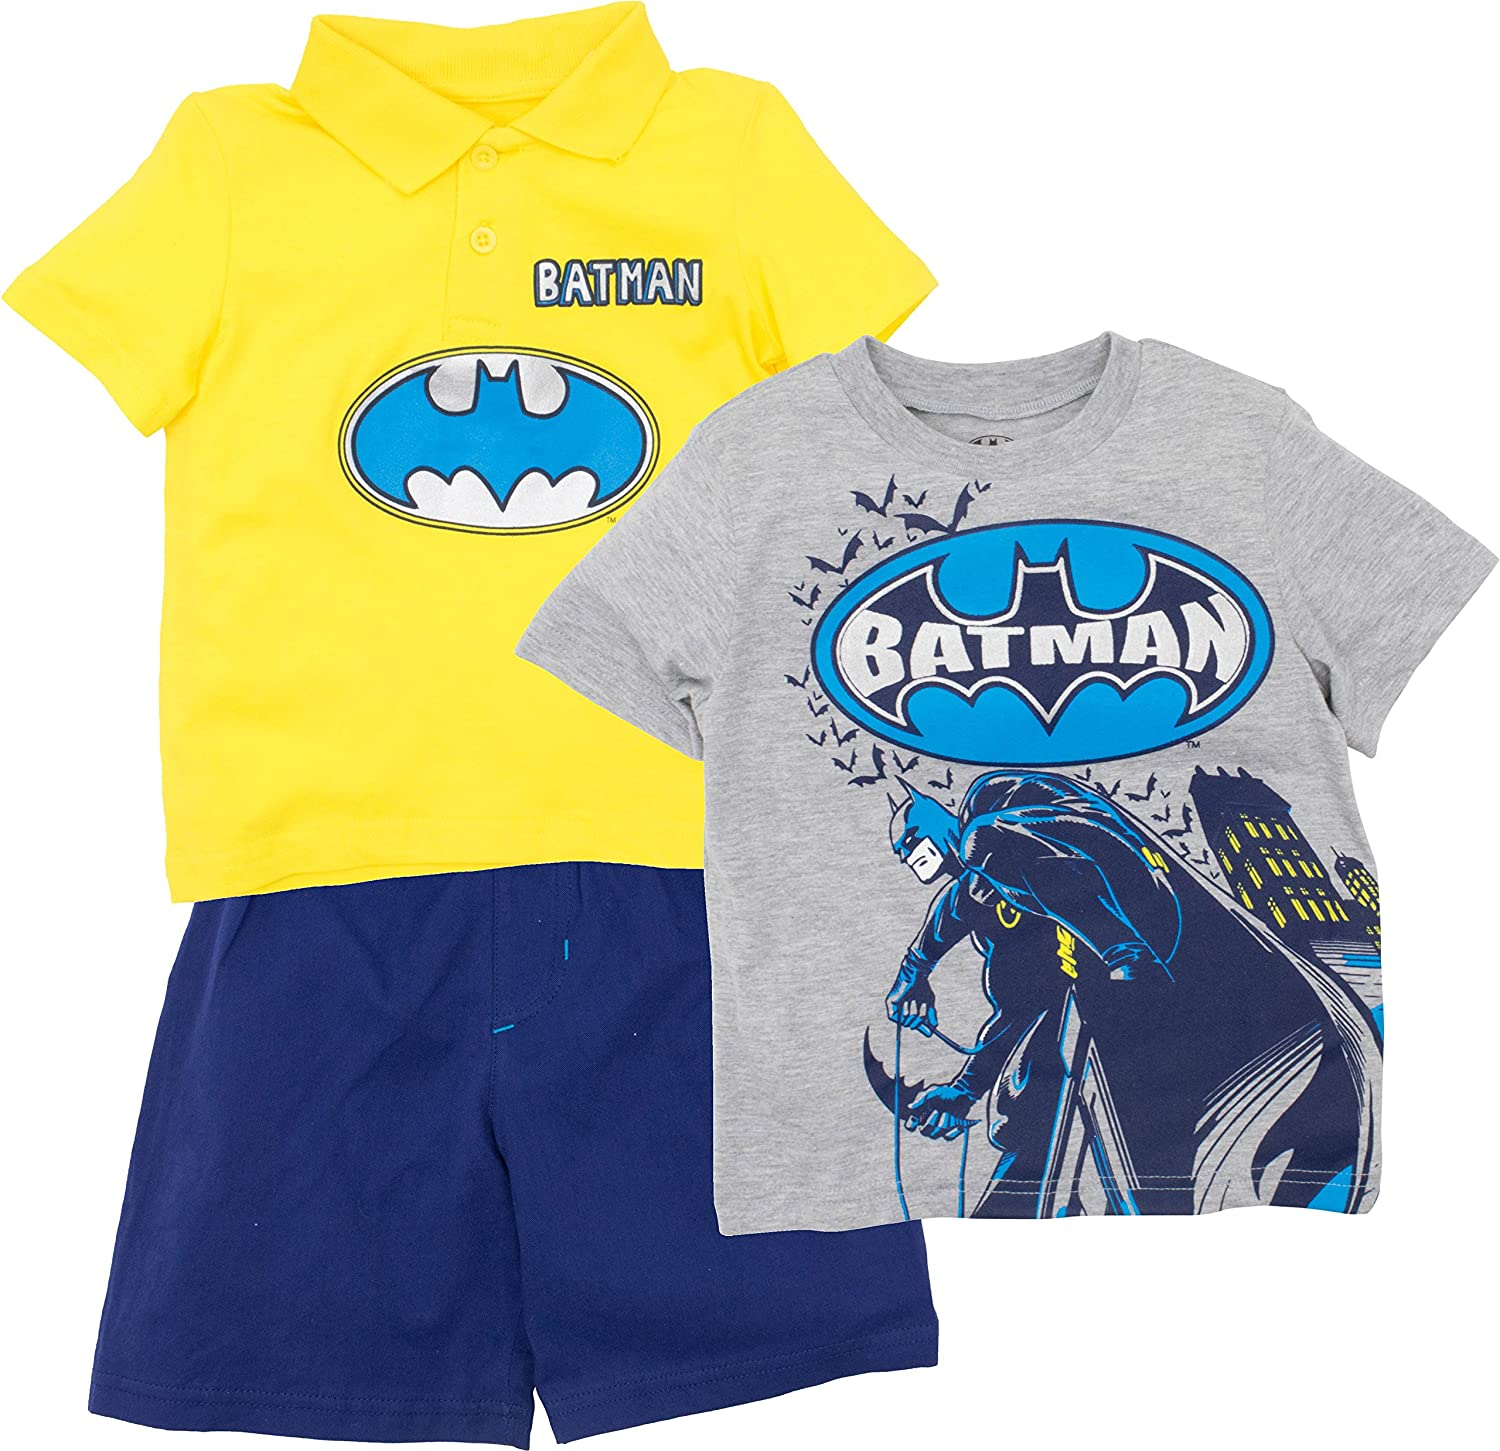 Warner Bros. Batman Toddler Boys' 3pc Polo, T-Shirt & Shorts Set, Yellow & Grey